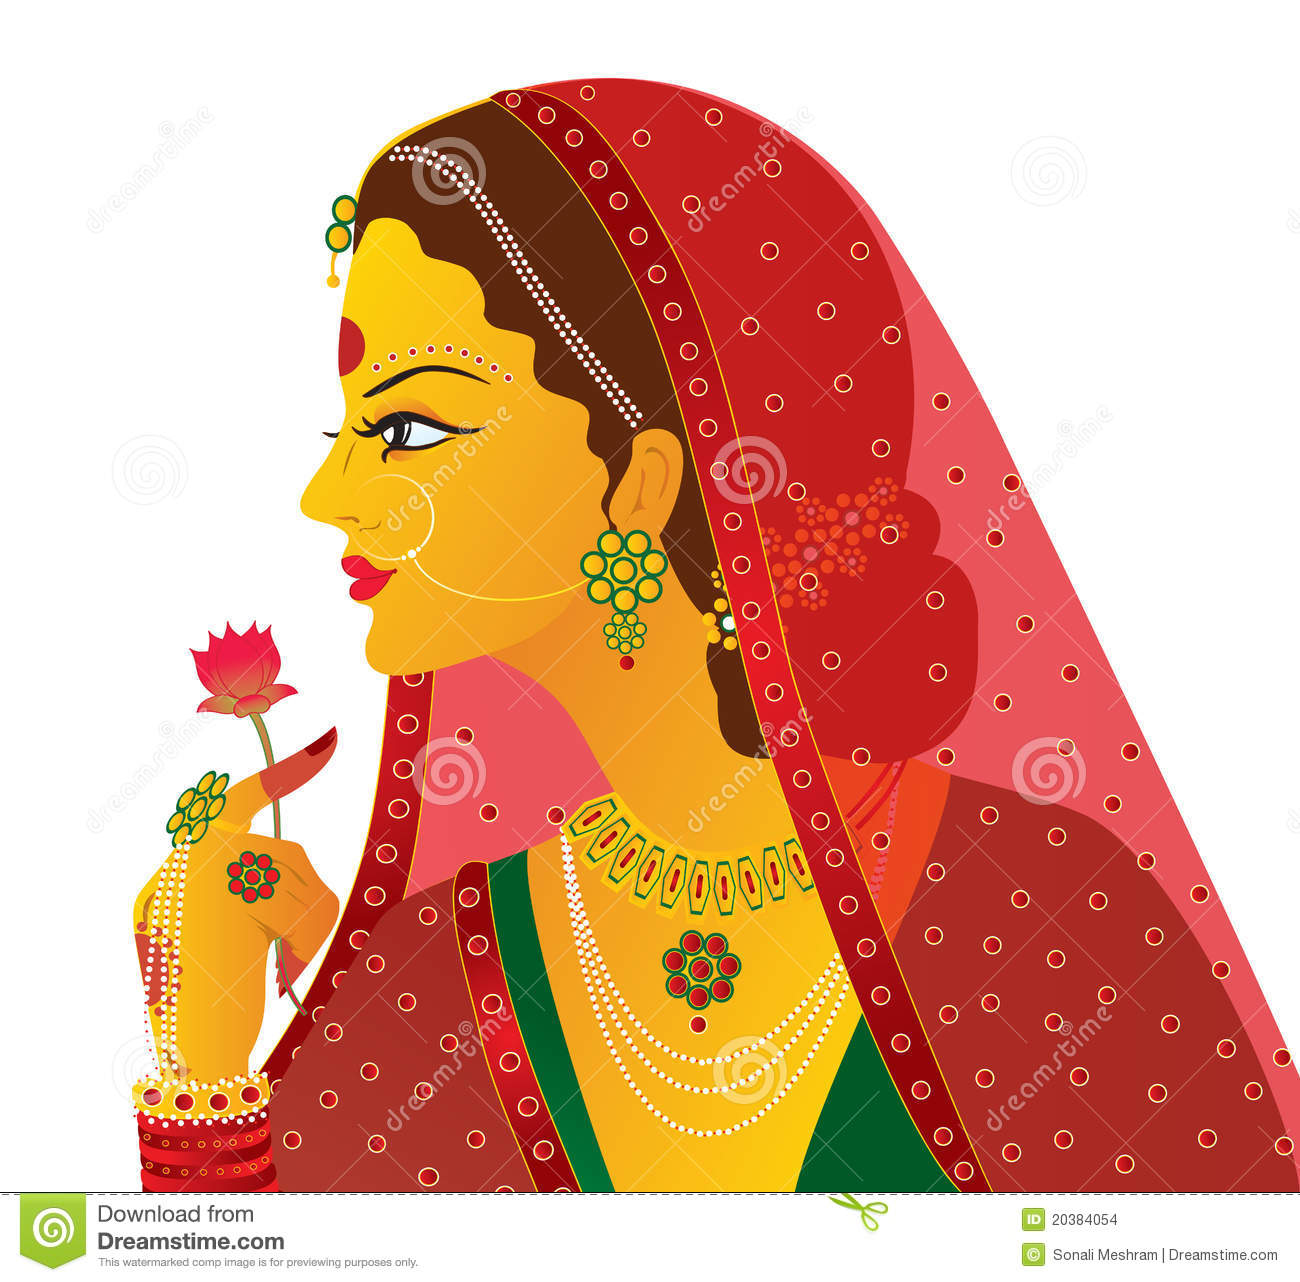 guilderland center hindu dating site Looking for a pop one man band in the guilderland center, ny area gigmasters will help you choose the best local event vendors start here.